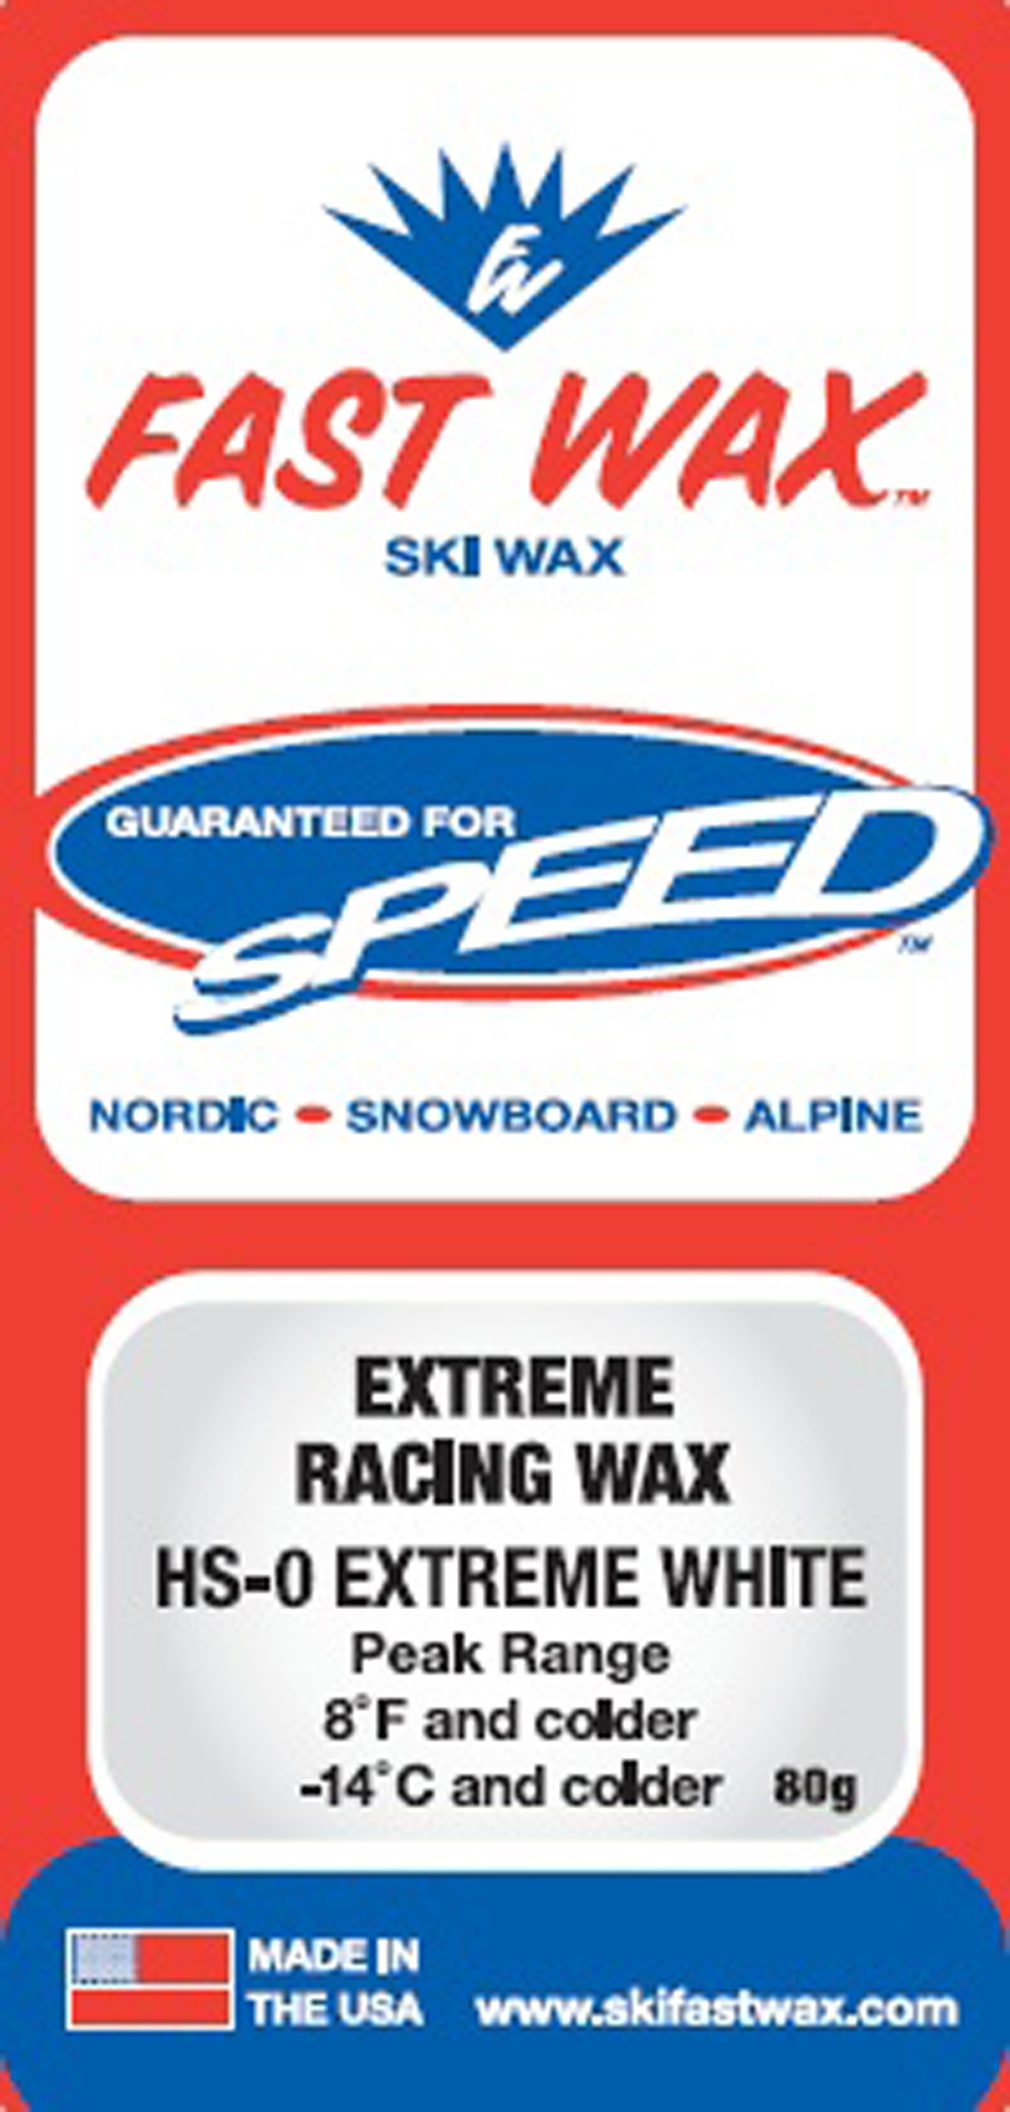 Ski The most suburb cold weather ski and snowboard wax on the market Excellent in..... old wind blown powdery snow or man-made snow. Extreme cold Skiing Conditions... Greasy fast skis in cold conditions Under these conditions the snow is generally hard pack and icy, a stiff ski works best.Key Features of the Fast Wax HS-0 Wax White: Peak Temp Range 8 deg F and colder (-14 deg C and colder) - $8.95